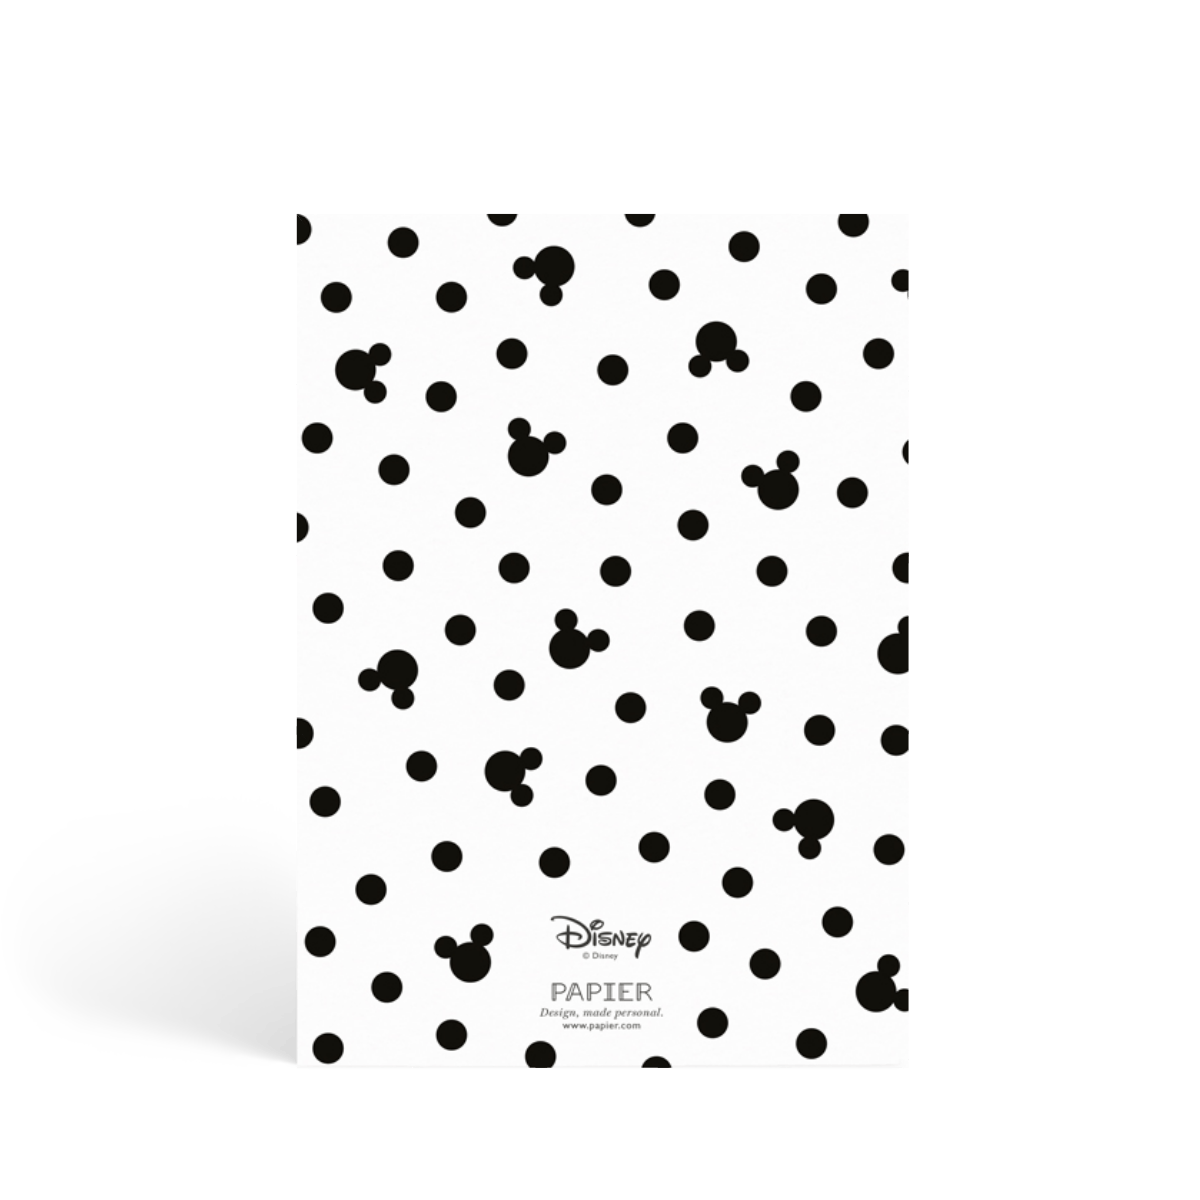 Https%3a%2f%2fwww.papier.com%2fproduct image%2f58890%2f5%2fpolka dot mickey mouse 14057 back 1542823307.png?ixlib=rb 1.1